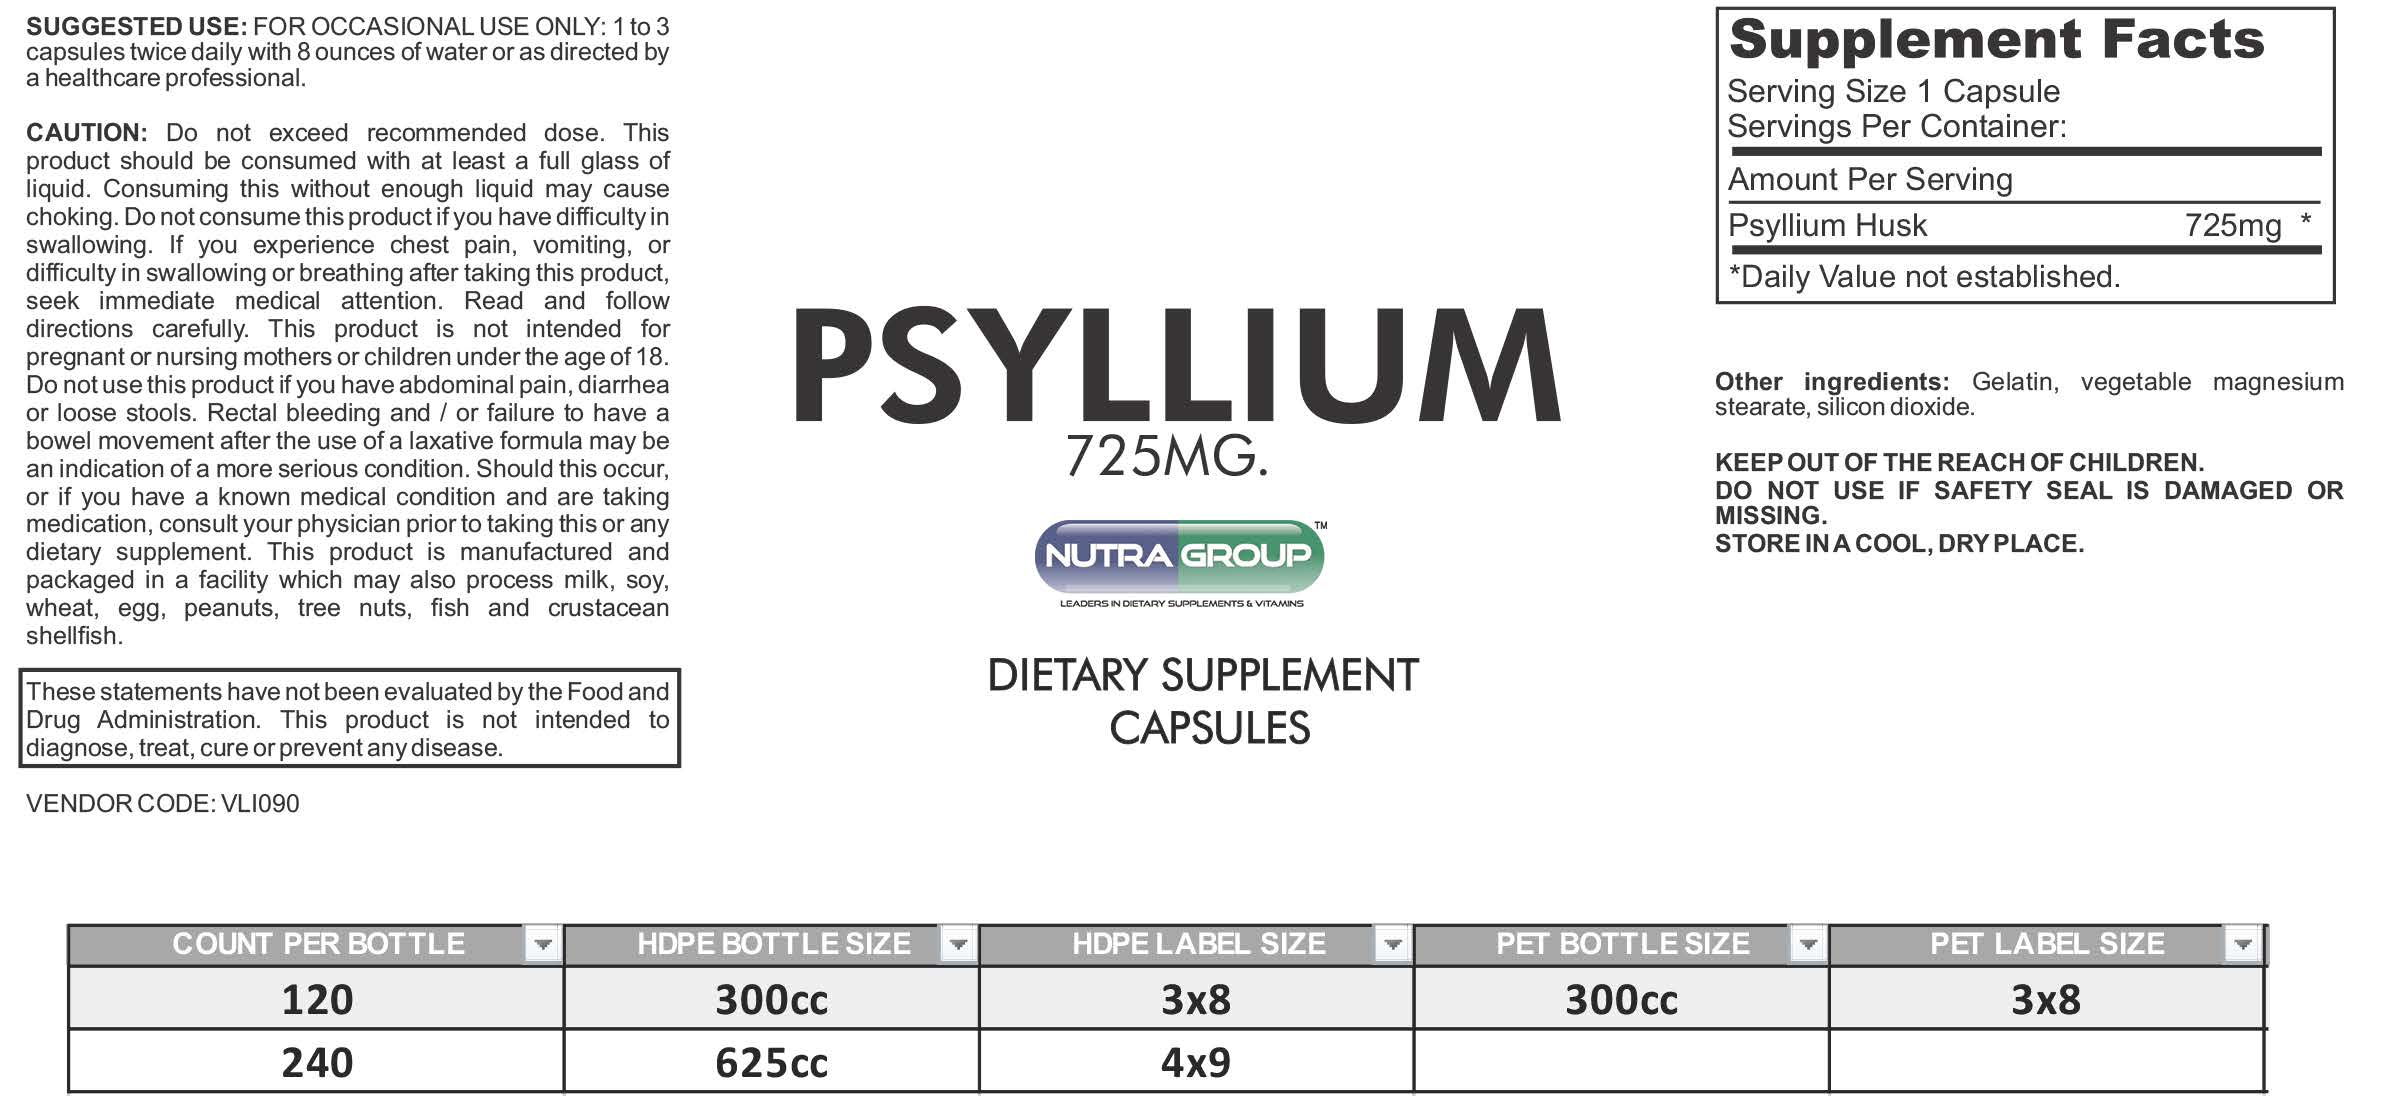 Private label Psyllium Husk capsules